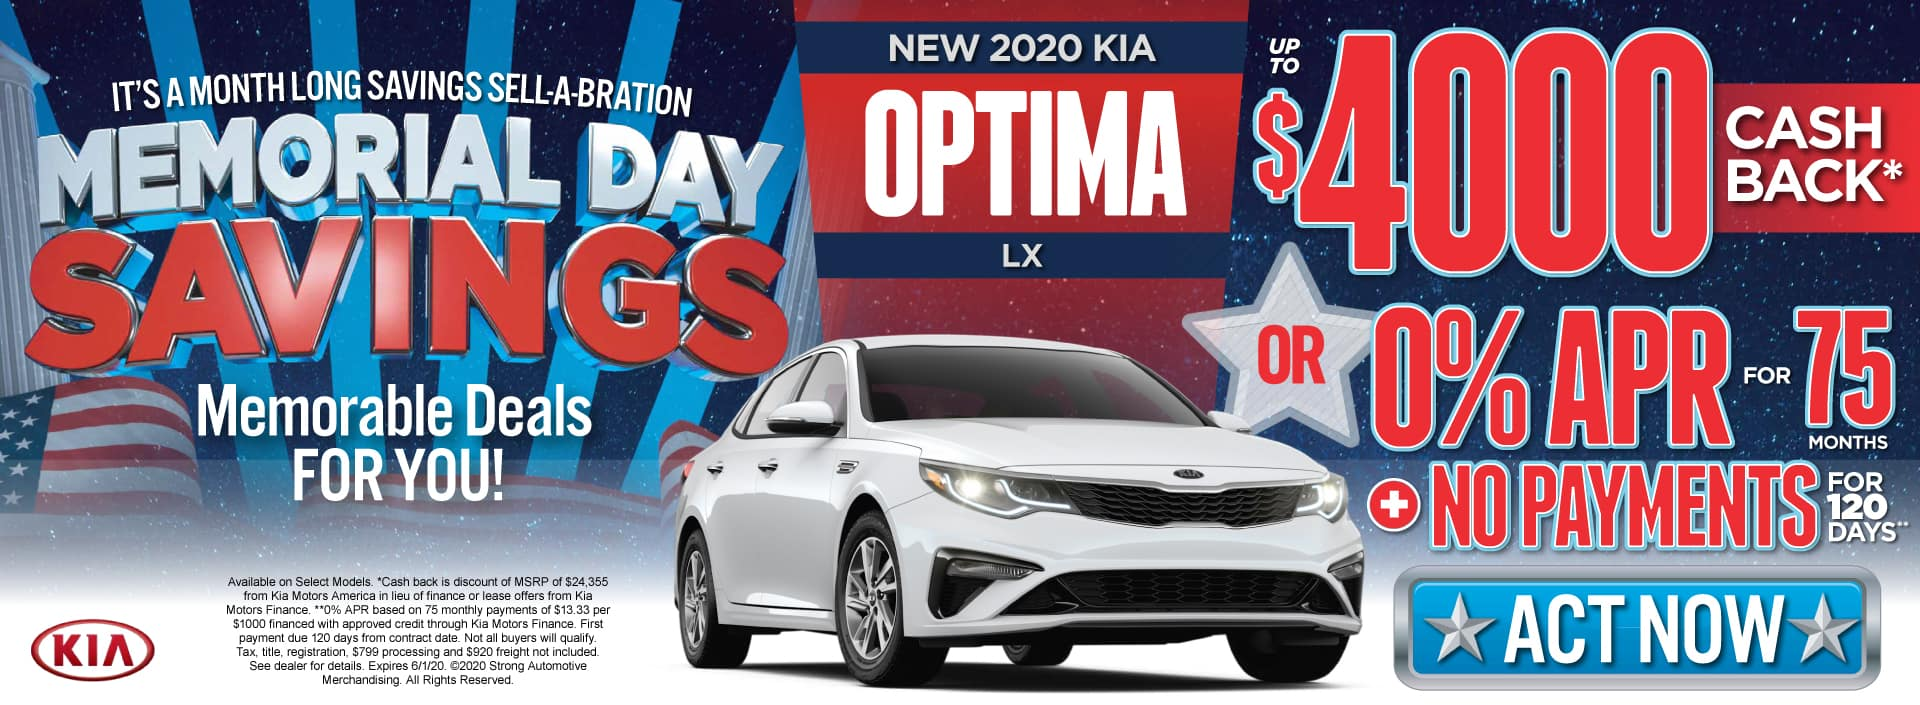 New 2020 Kia Optima - $4000 Cash Back or 0% APR for 75 months - Shop Now